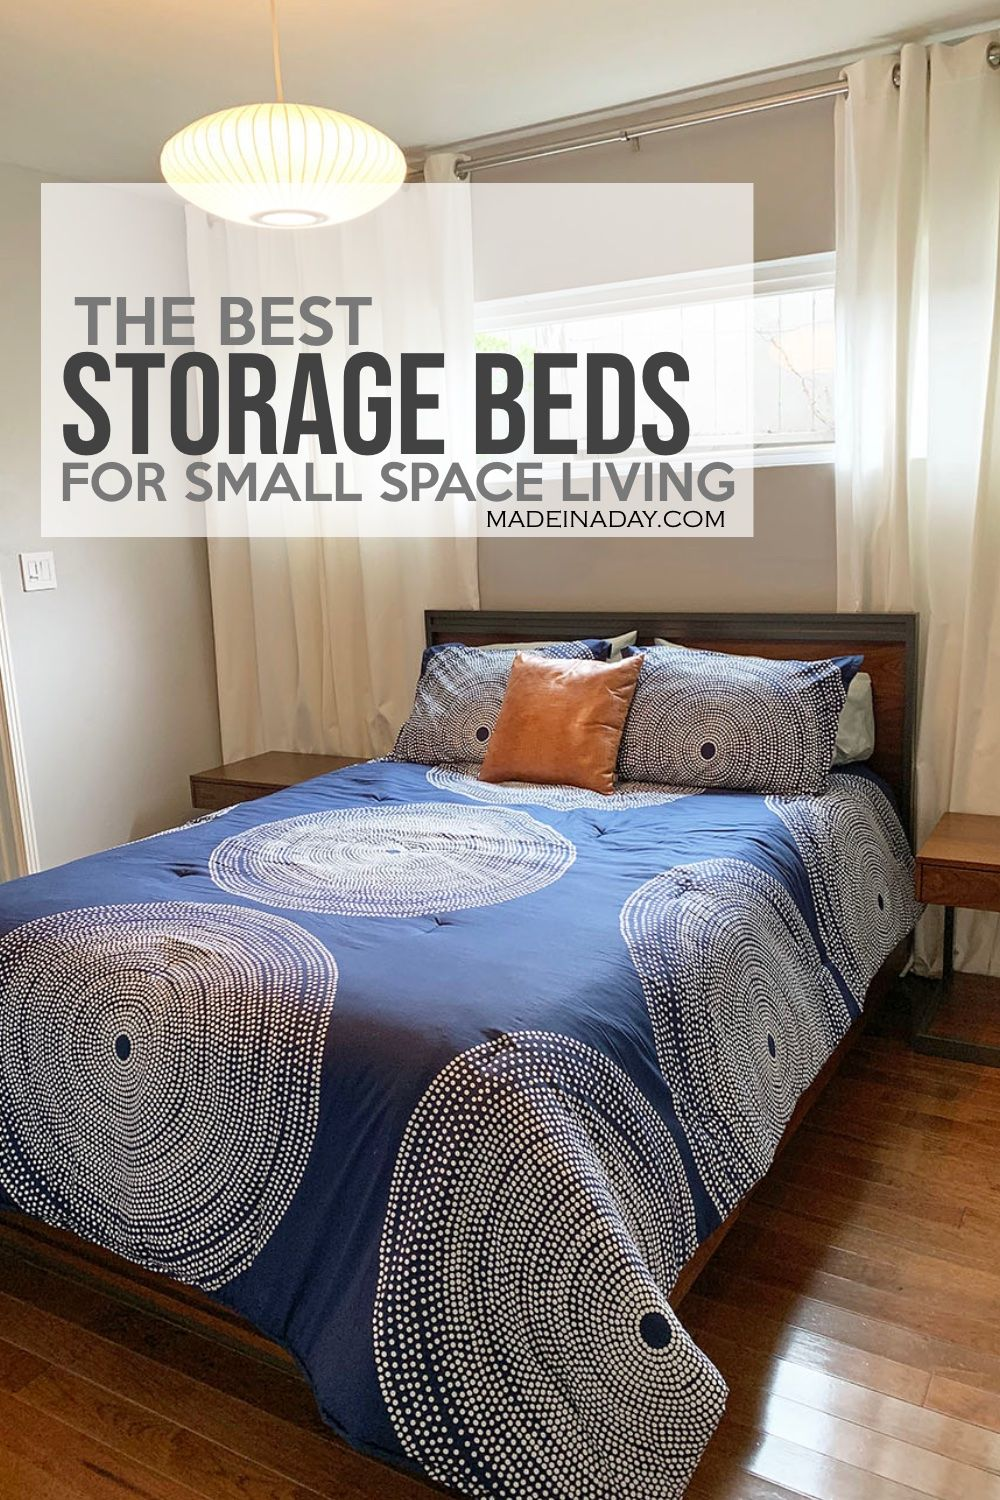 The Best Storage Beds For Small Space Living Blog Home